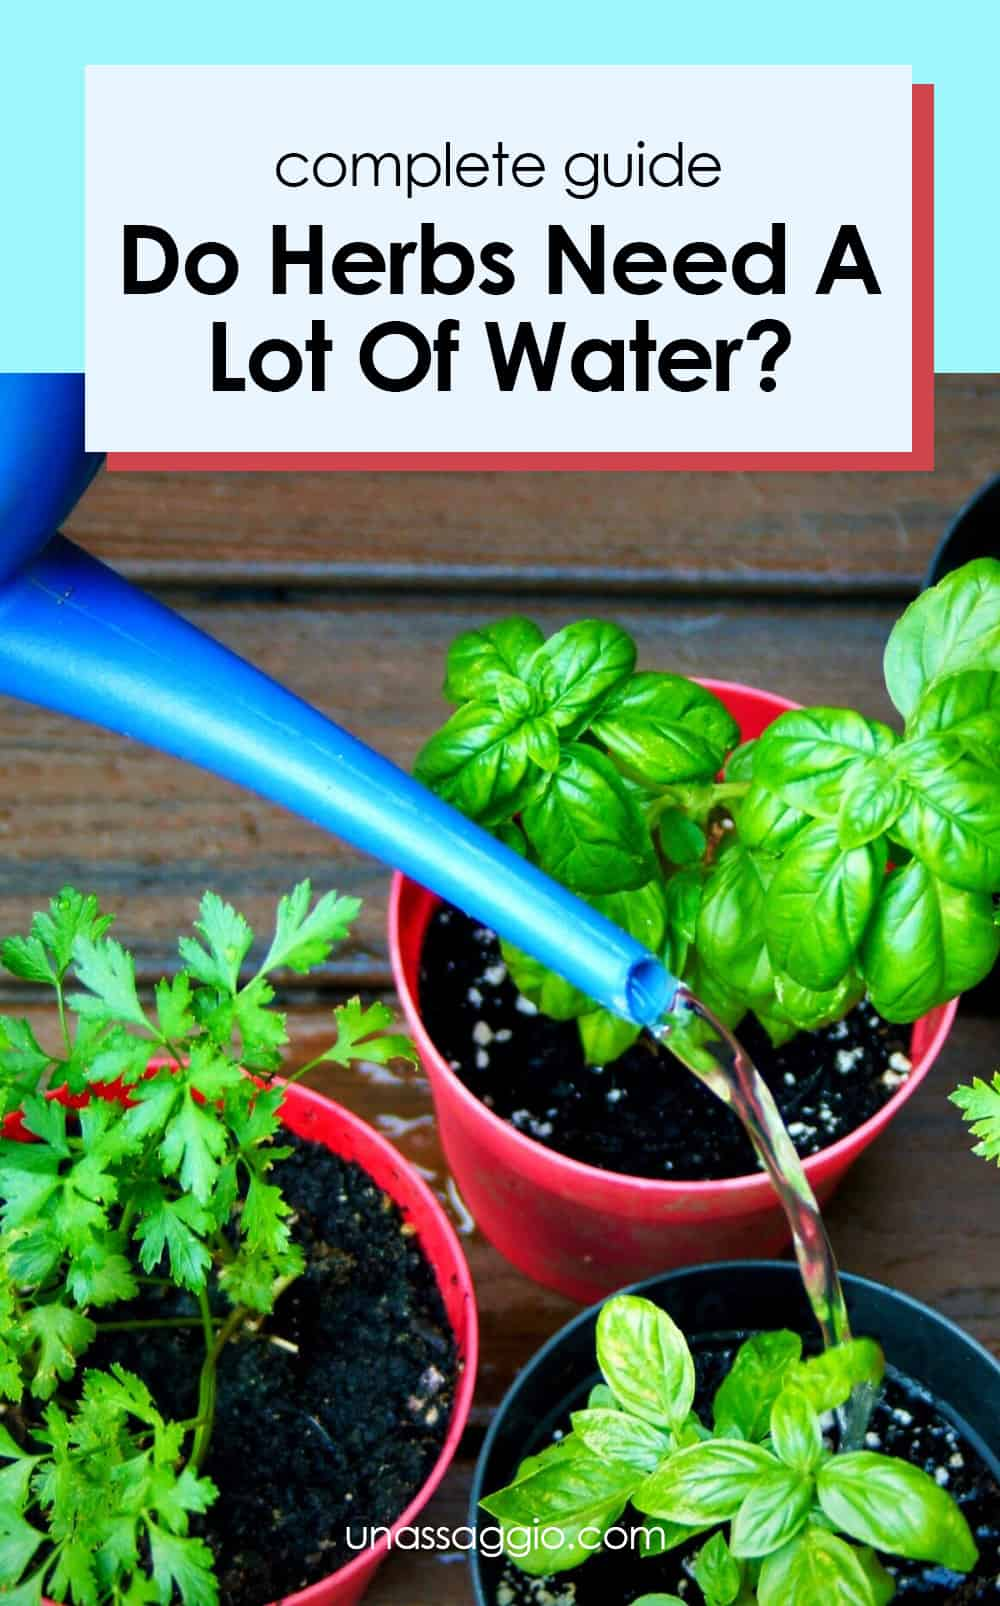 Do Herbs Need A Lot Of Water?